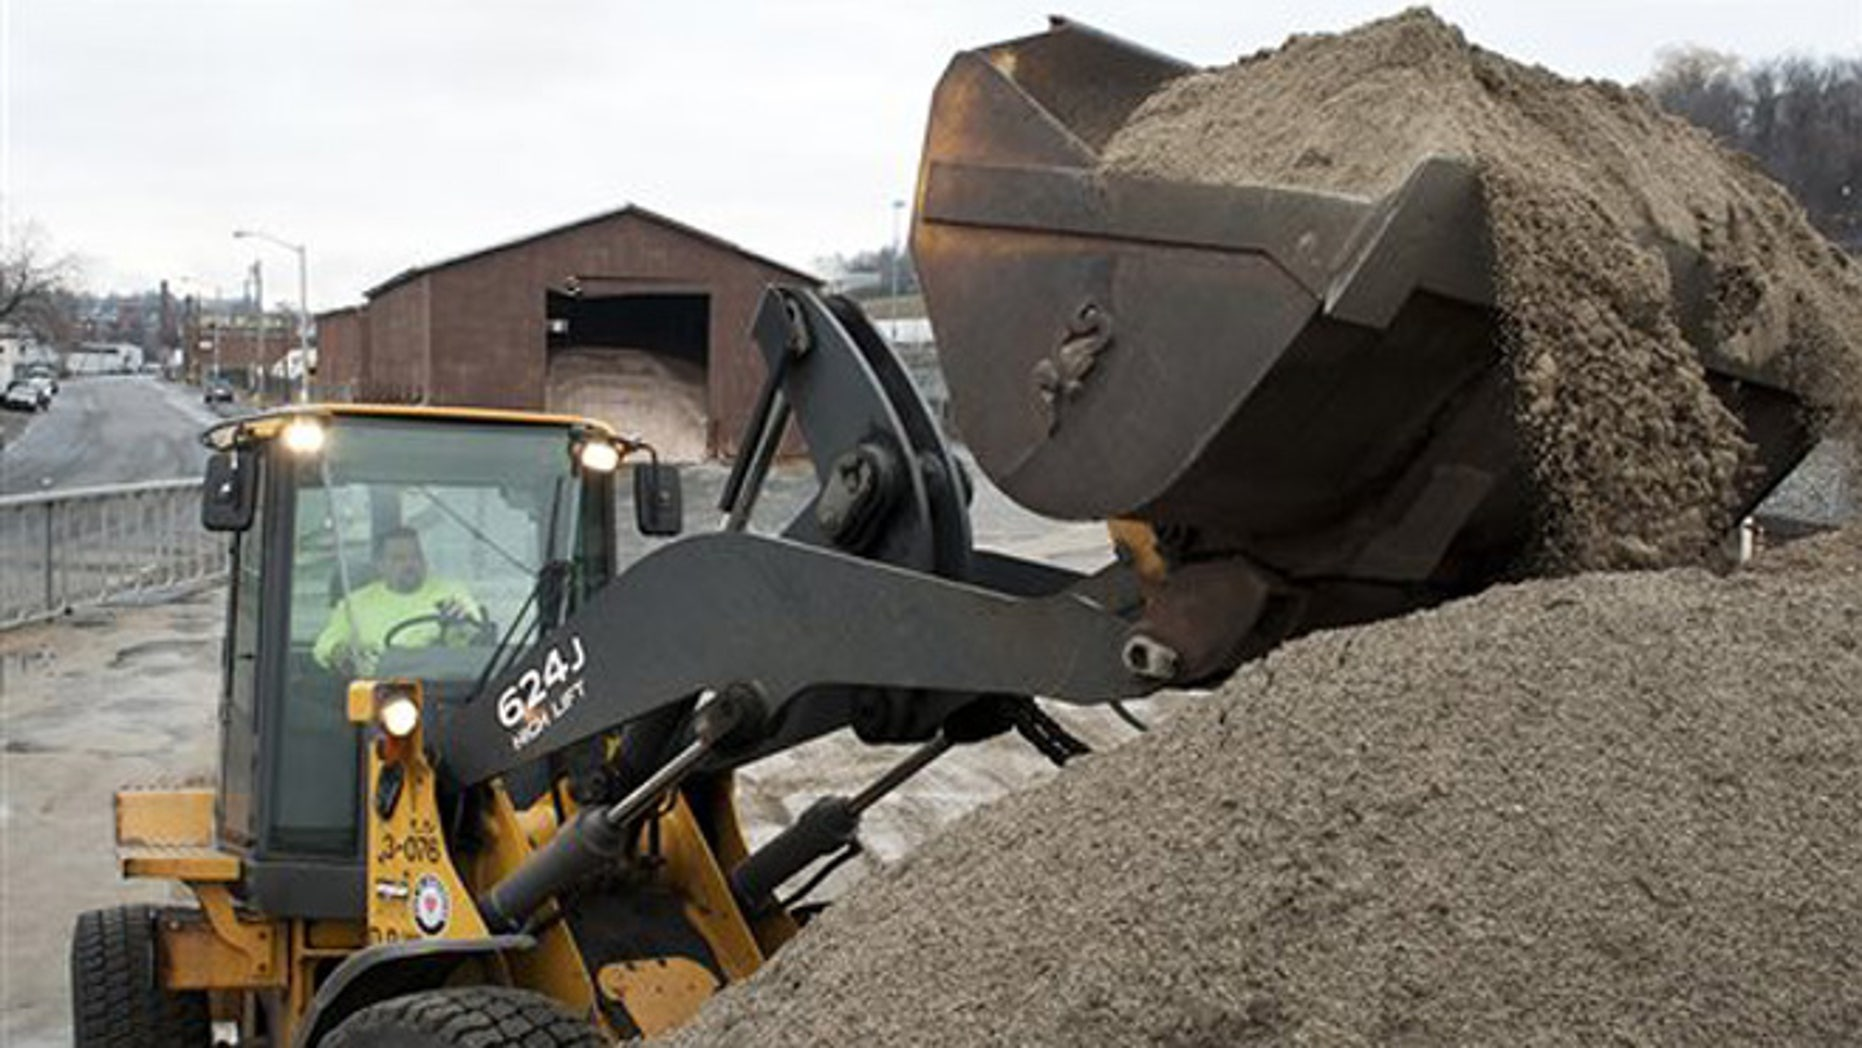 Joseph Lebeau mixes road sand and salt at the Department of Public Works facility in Worcester, Mass., as the Worcester DPW prepares for winter weather.